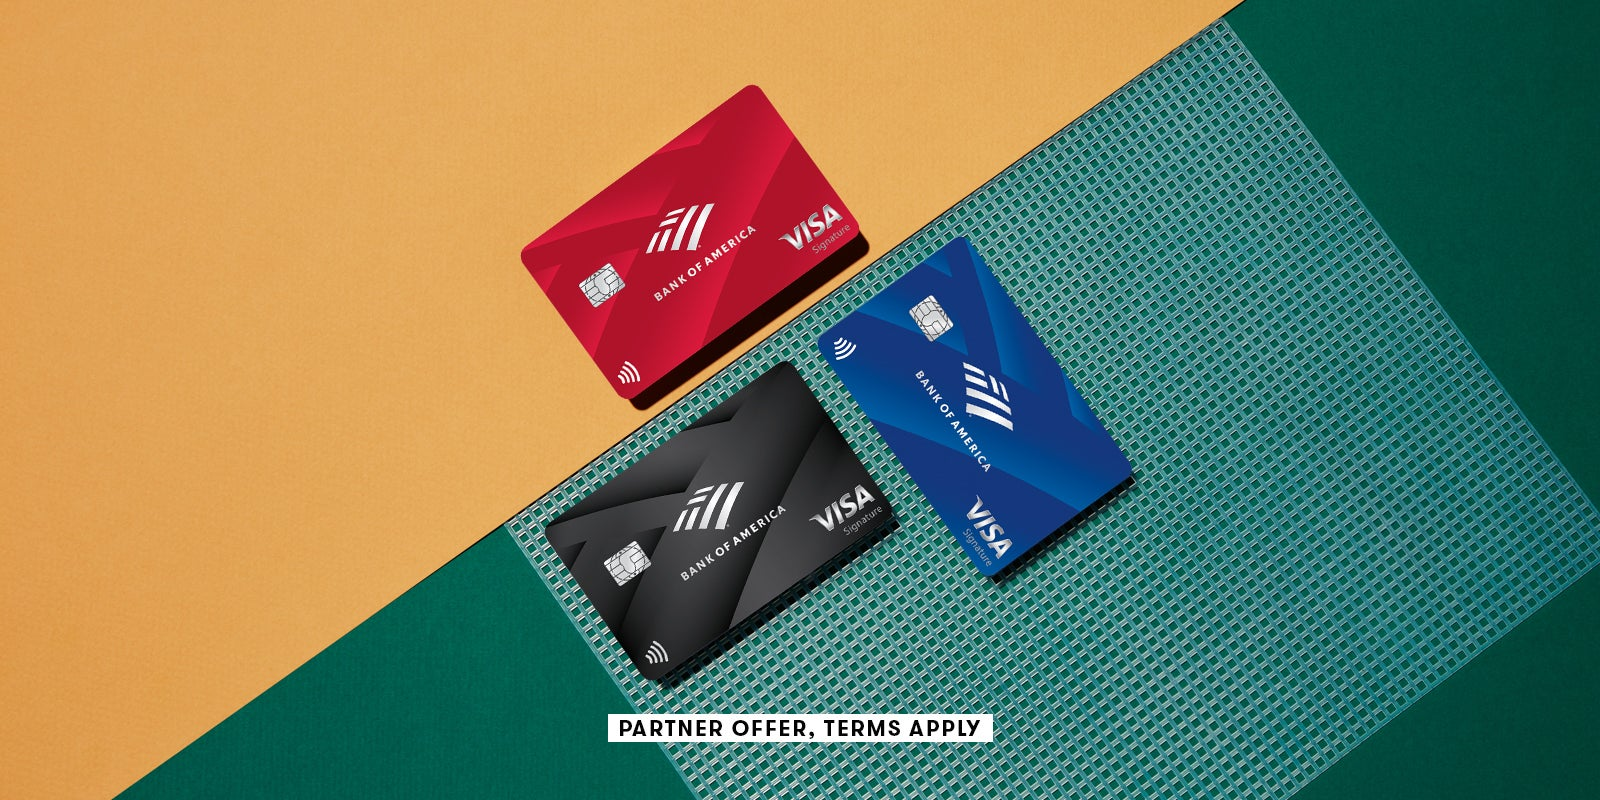 The best Bank of America credit cards of 2021 - The Points Guy